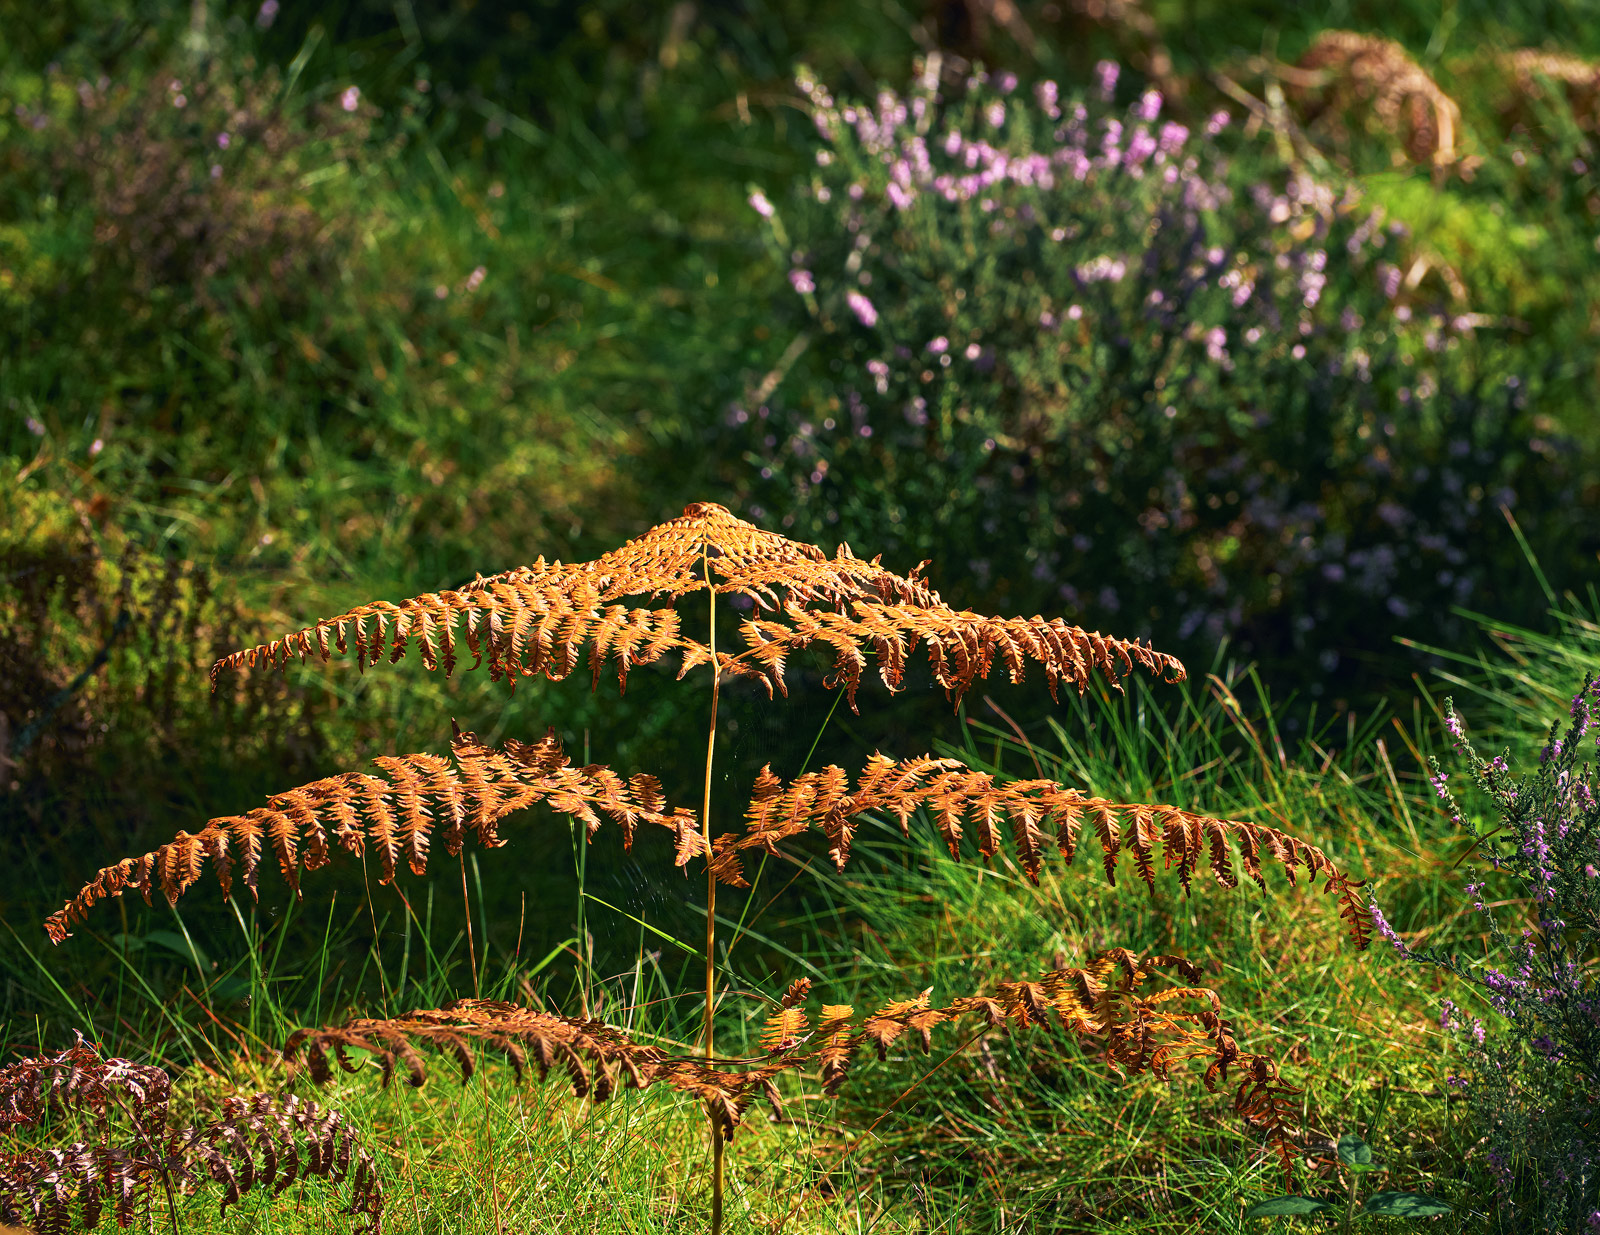 A freshly turned copper coloured bracken leaf tilts its neck toward the heather beds on the forest floor amongst the pine trees at Blairs Loch in Forres.